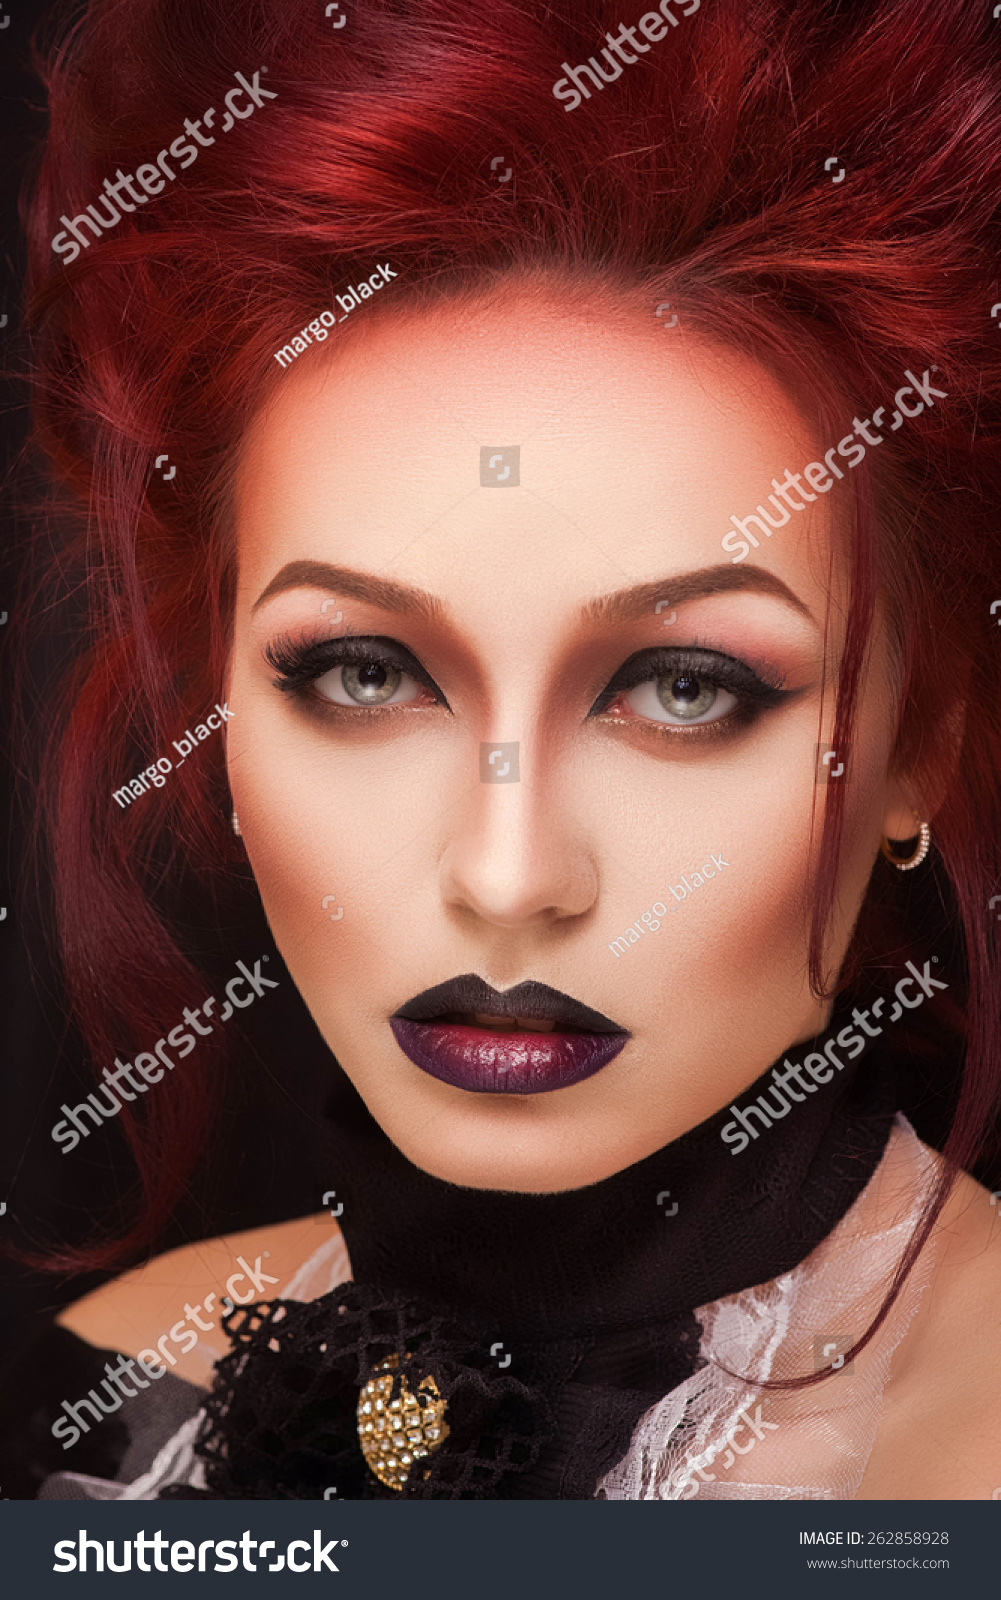 Watch - Makeup red Gothic video